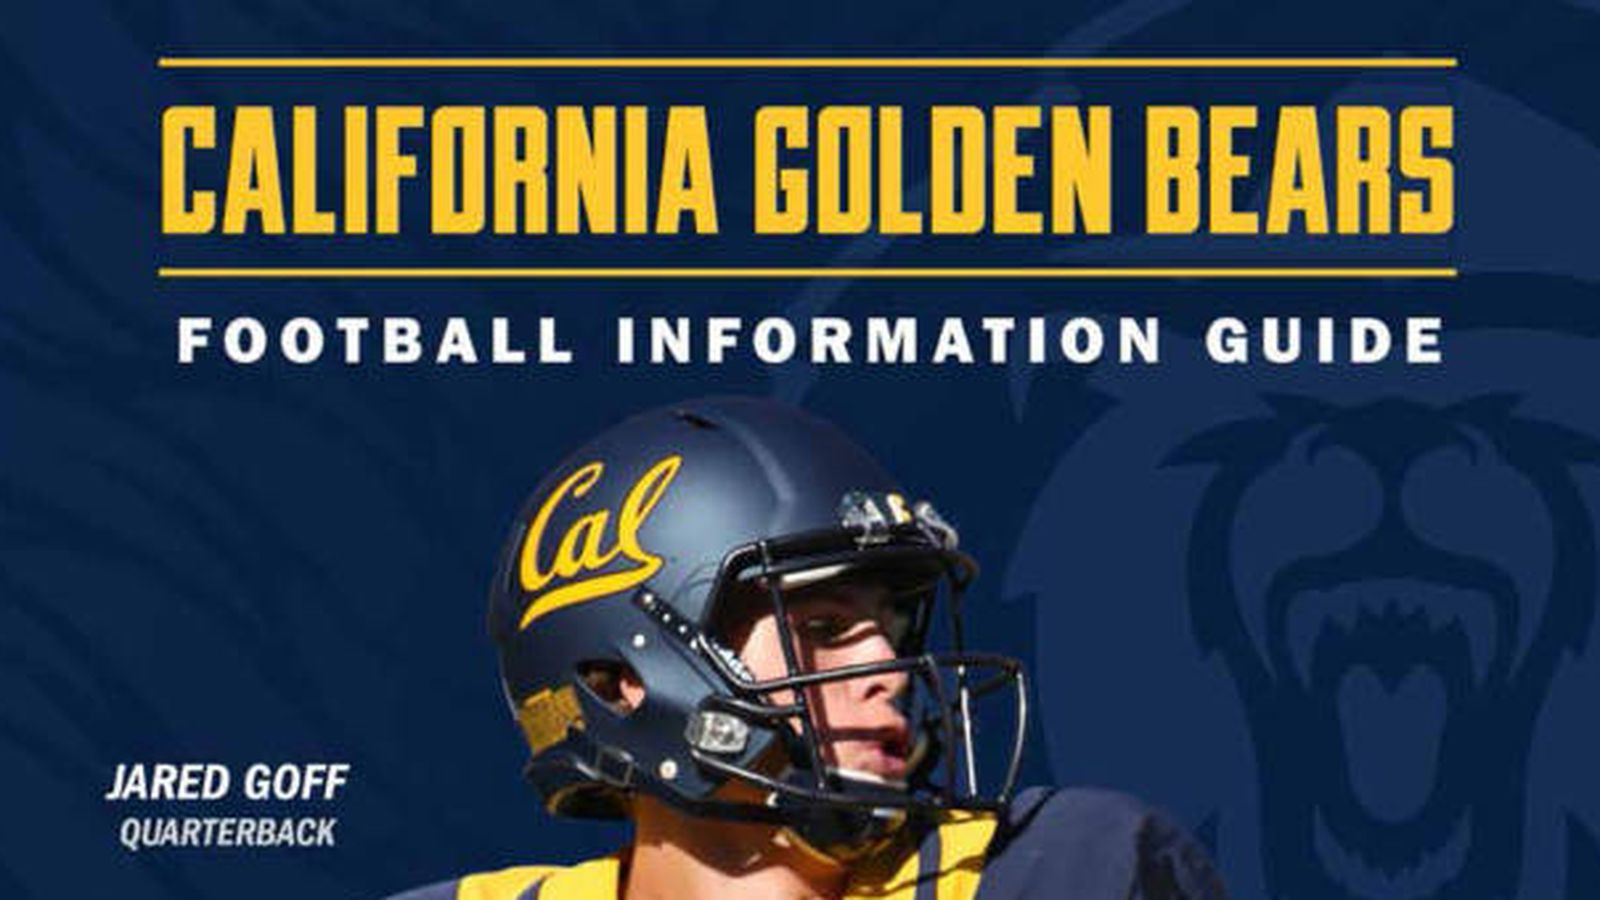 Cal Football Media Guide 2014 Jared Goff Cover Roster Updates Pdf